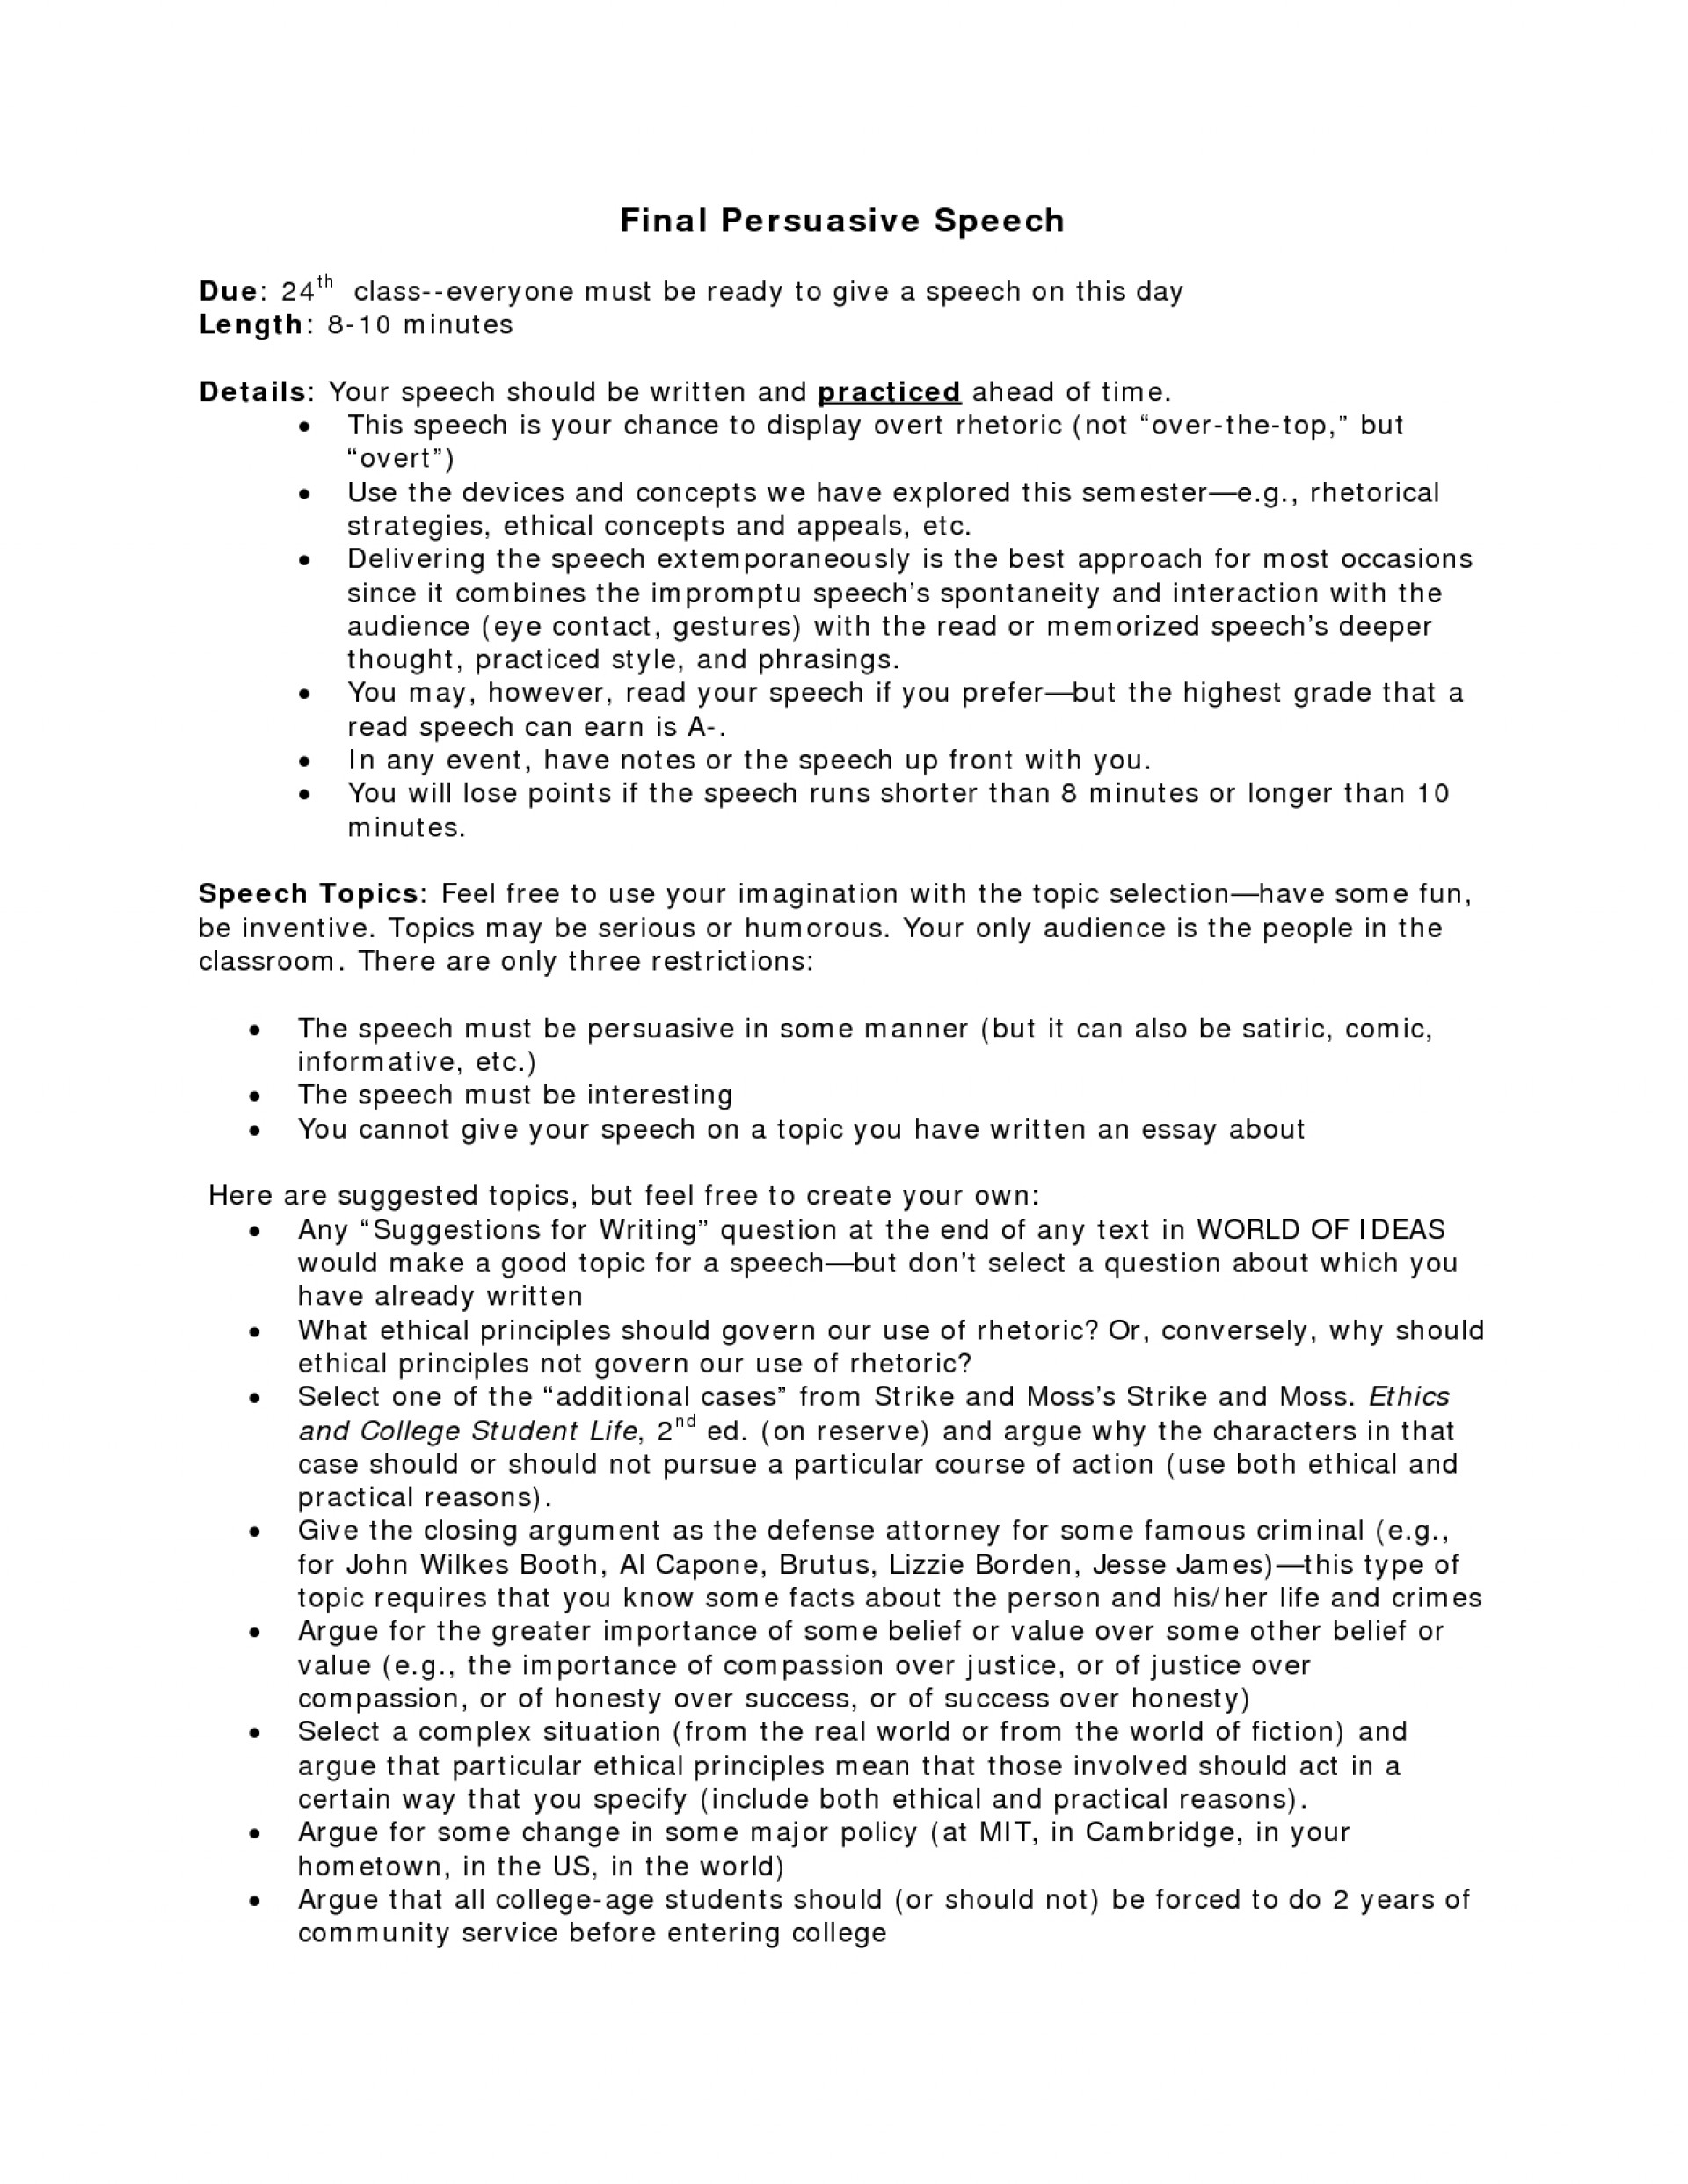 007 Persuasivessay Topics For College Writings Andssays Middle School To Write About Narrativexample Re Science Argumentative Good Paper Informative Listxpository Amazing Persuasive Essay 2018 Uk High 1920